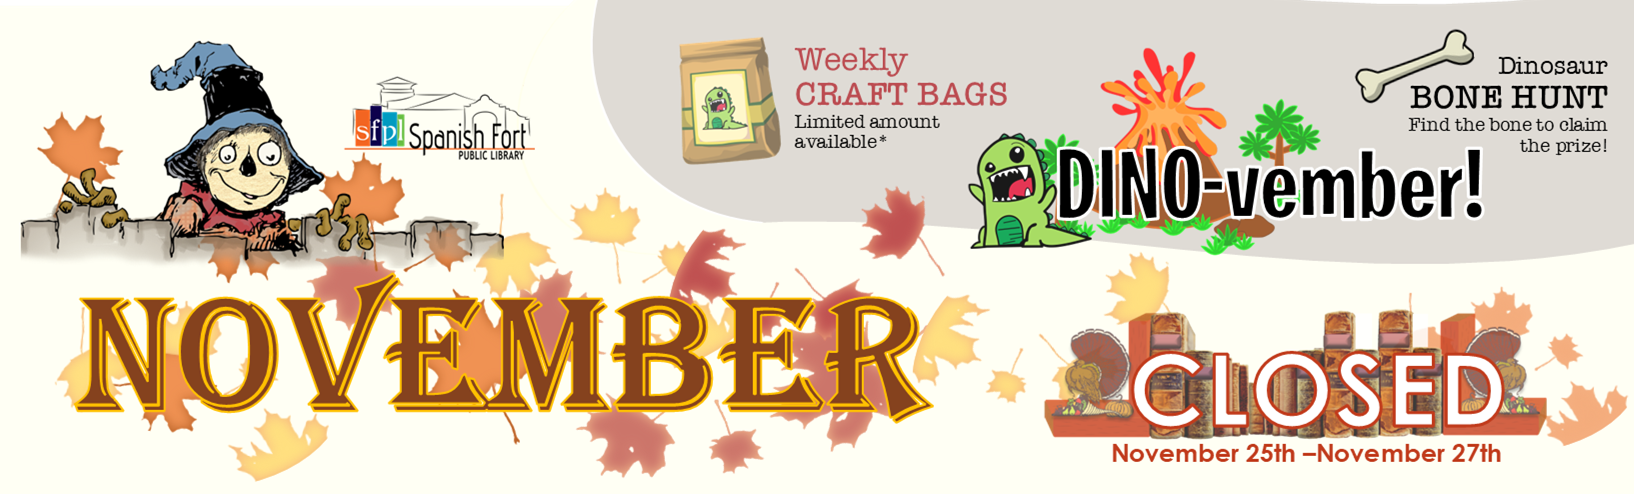 November at SFPL: Dino-vember fun! Weekly take home crafts. Dino bone hunt! Find the bone at the library, win a prize!